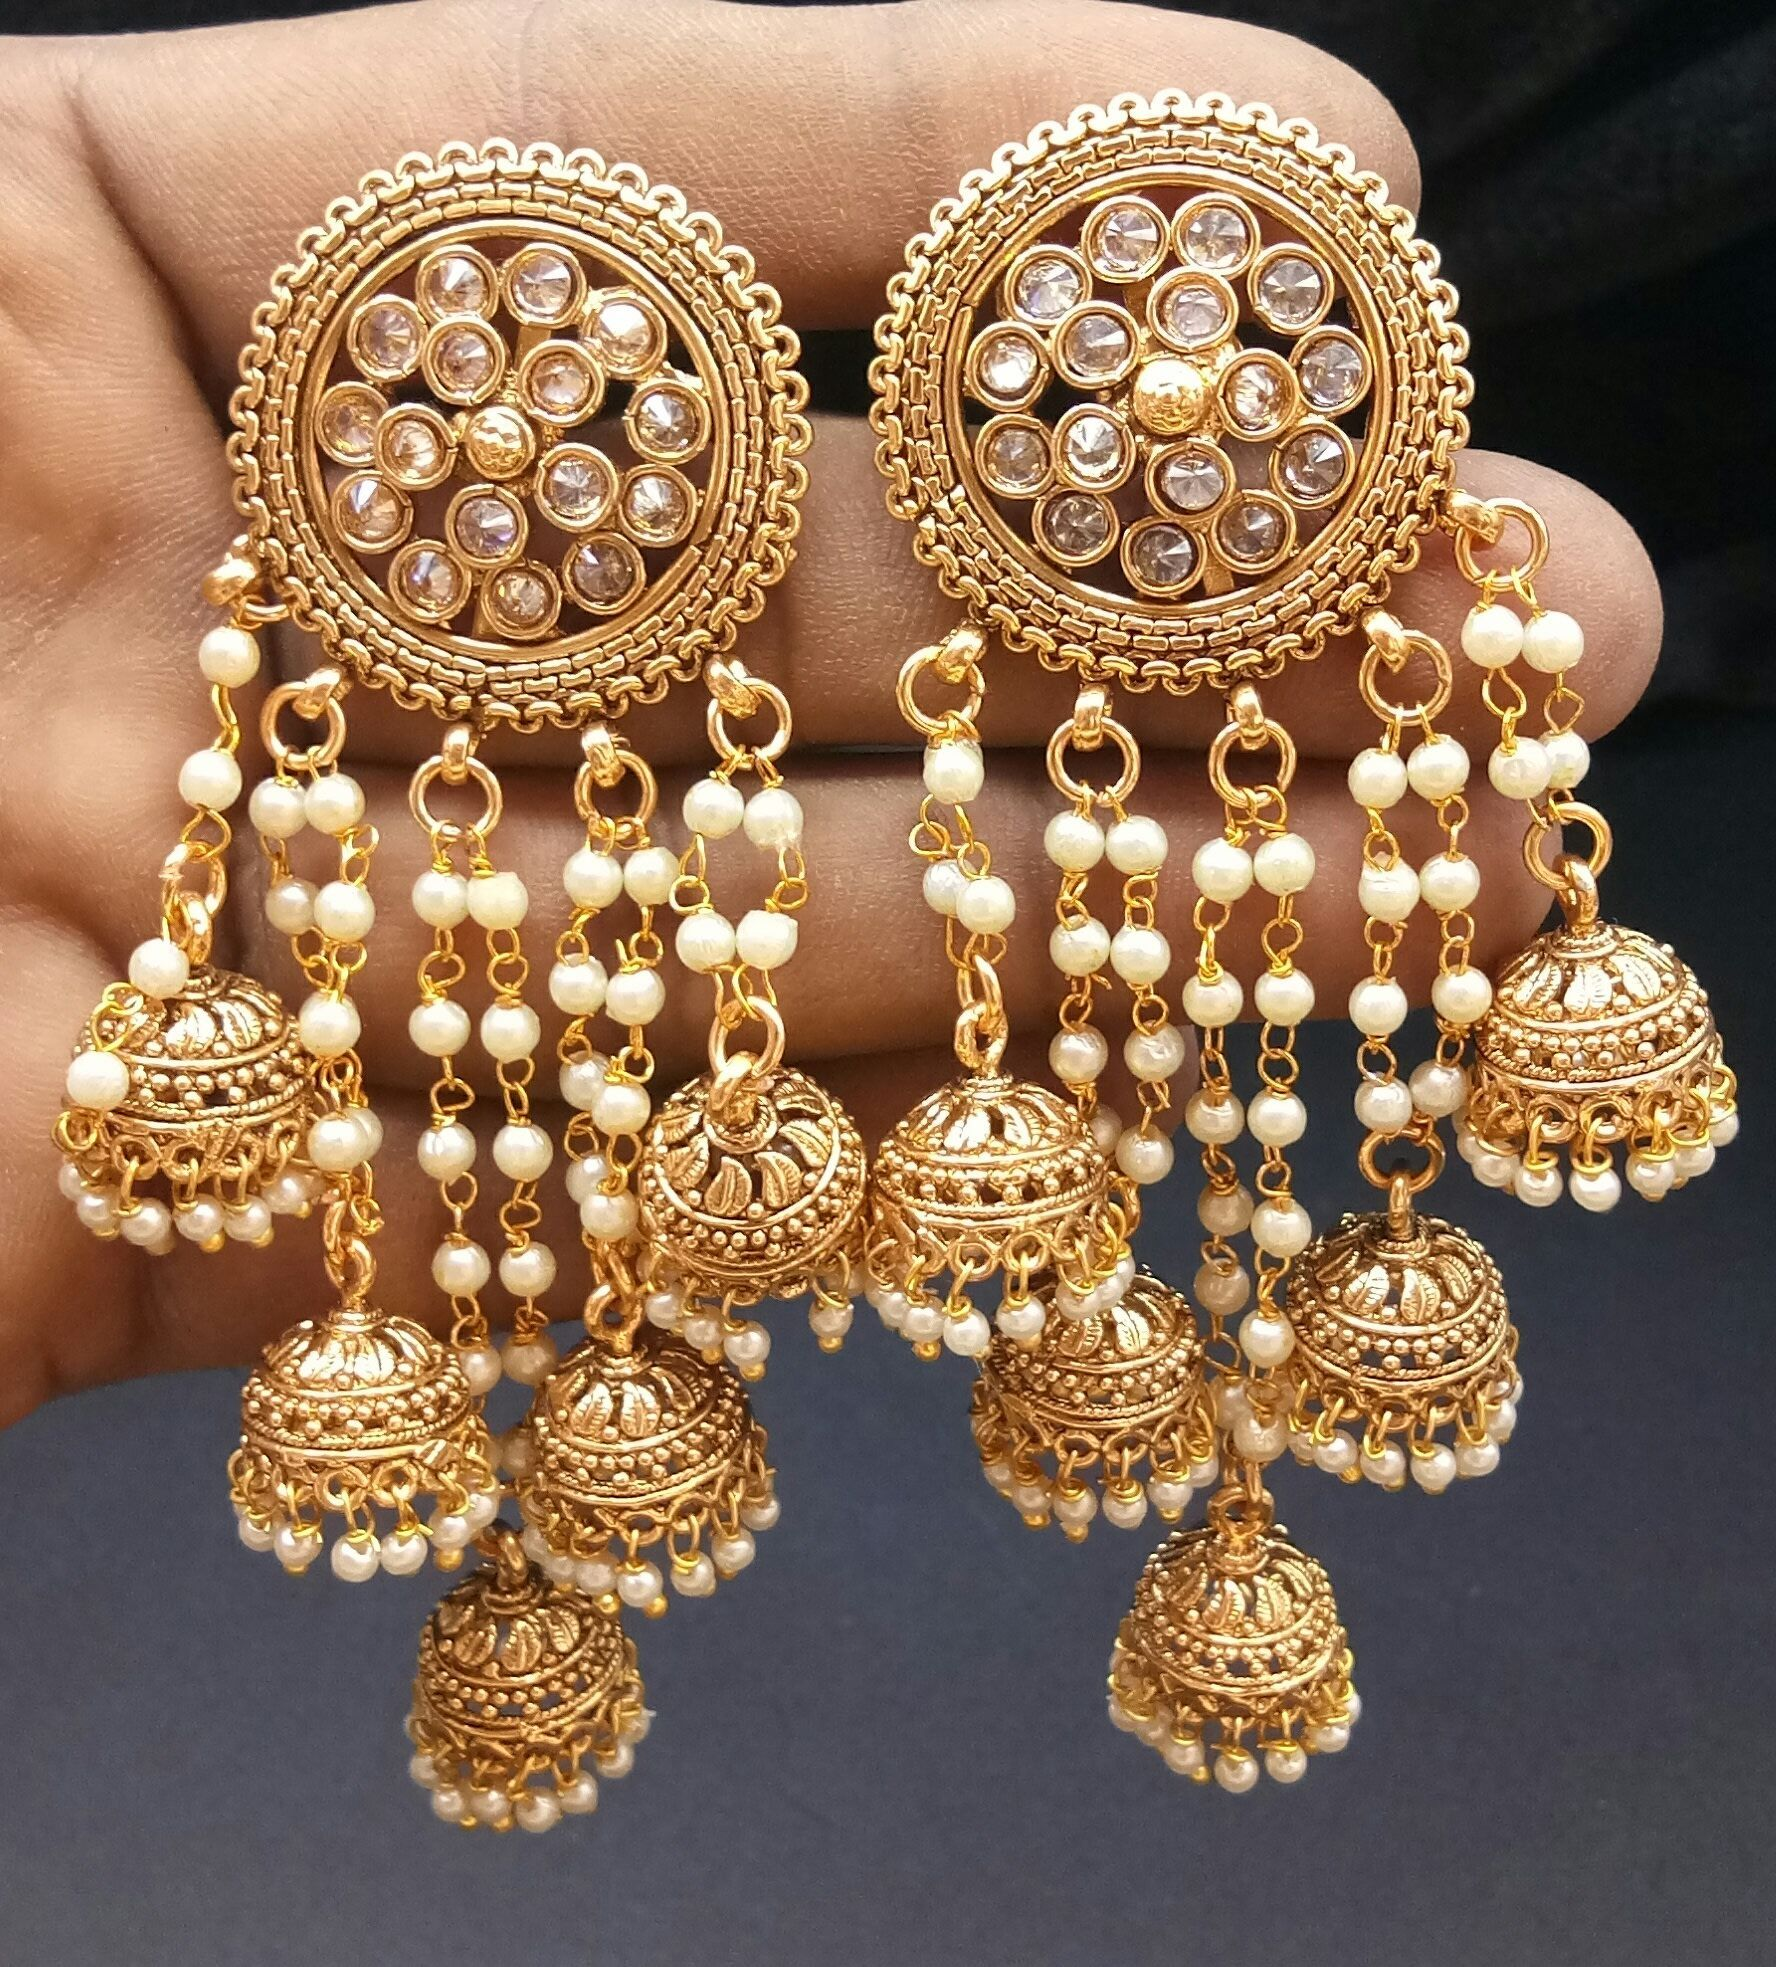 63e375282 Buy Traditional Jhumka With Pearl Earring Wedding Wear Earring online. ✯  100% authentic products, ✯ Hand curated, ✯ Timely delivery, ✯ Craftsvilla  ...